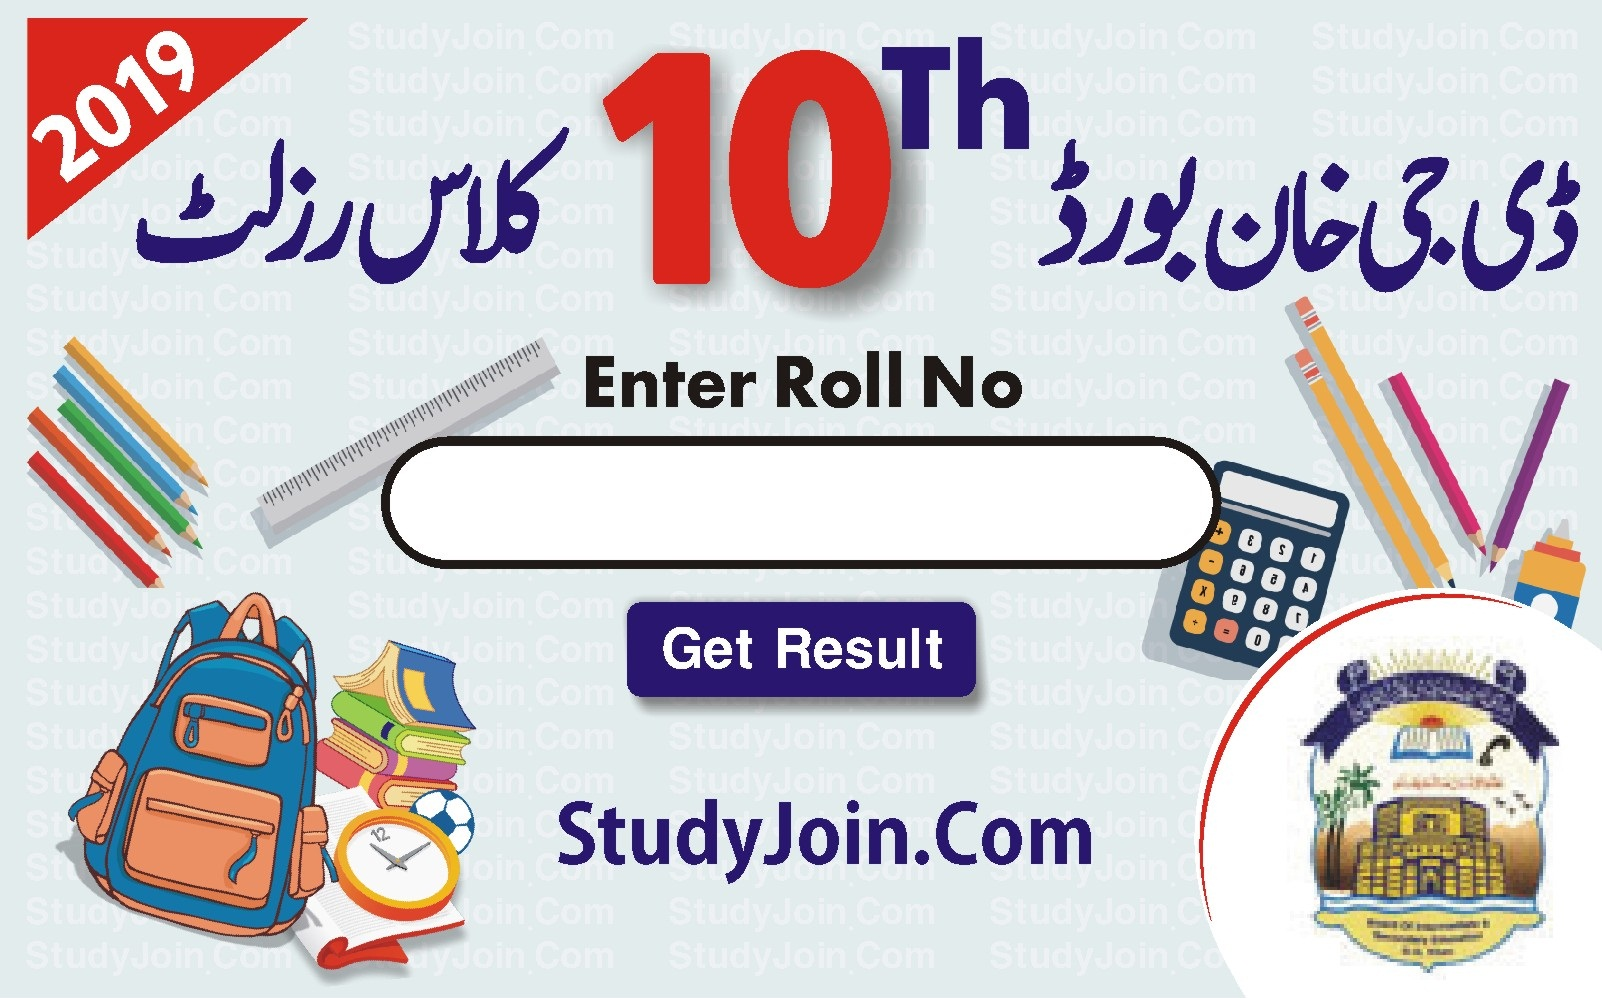 10 class result 2019 dg khan board, bise dg khan 10th result 2019, dg khan board 10th result 2019, bise dg khan 10th class result 2019, bise dg khan 10th result 2019 date, bise dg khan matric result 2019, dg khan board 10th result 2019, bise dg khan 10th result 2019, bise dg khan 10th result 2019 date.